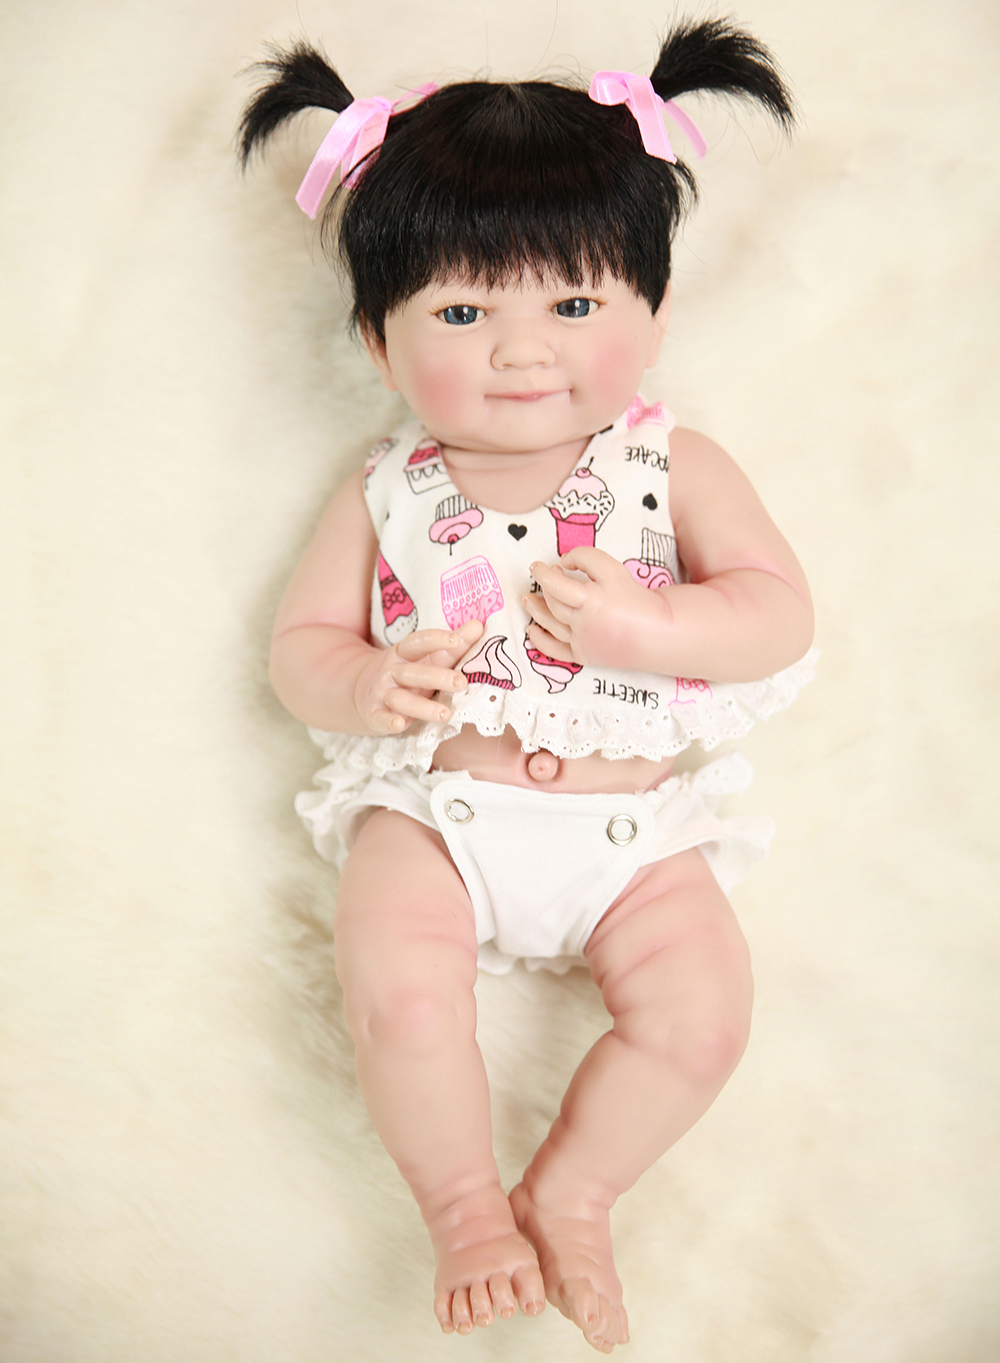 Cute Baby Alive Body Silicone Reborn Girl Dolls Toys for Children Girls Boys House Play Bedtime Doll Toys Birthday Gifts Toys new kitchen tableware doll accessories for barbie dolls toys girls baby play house toys